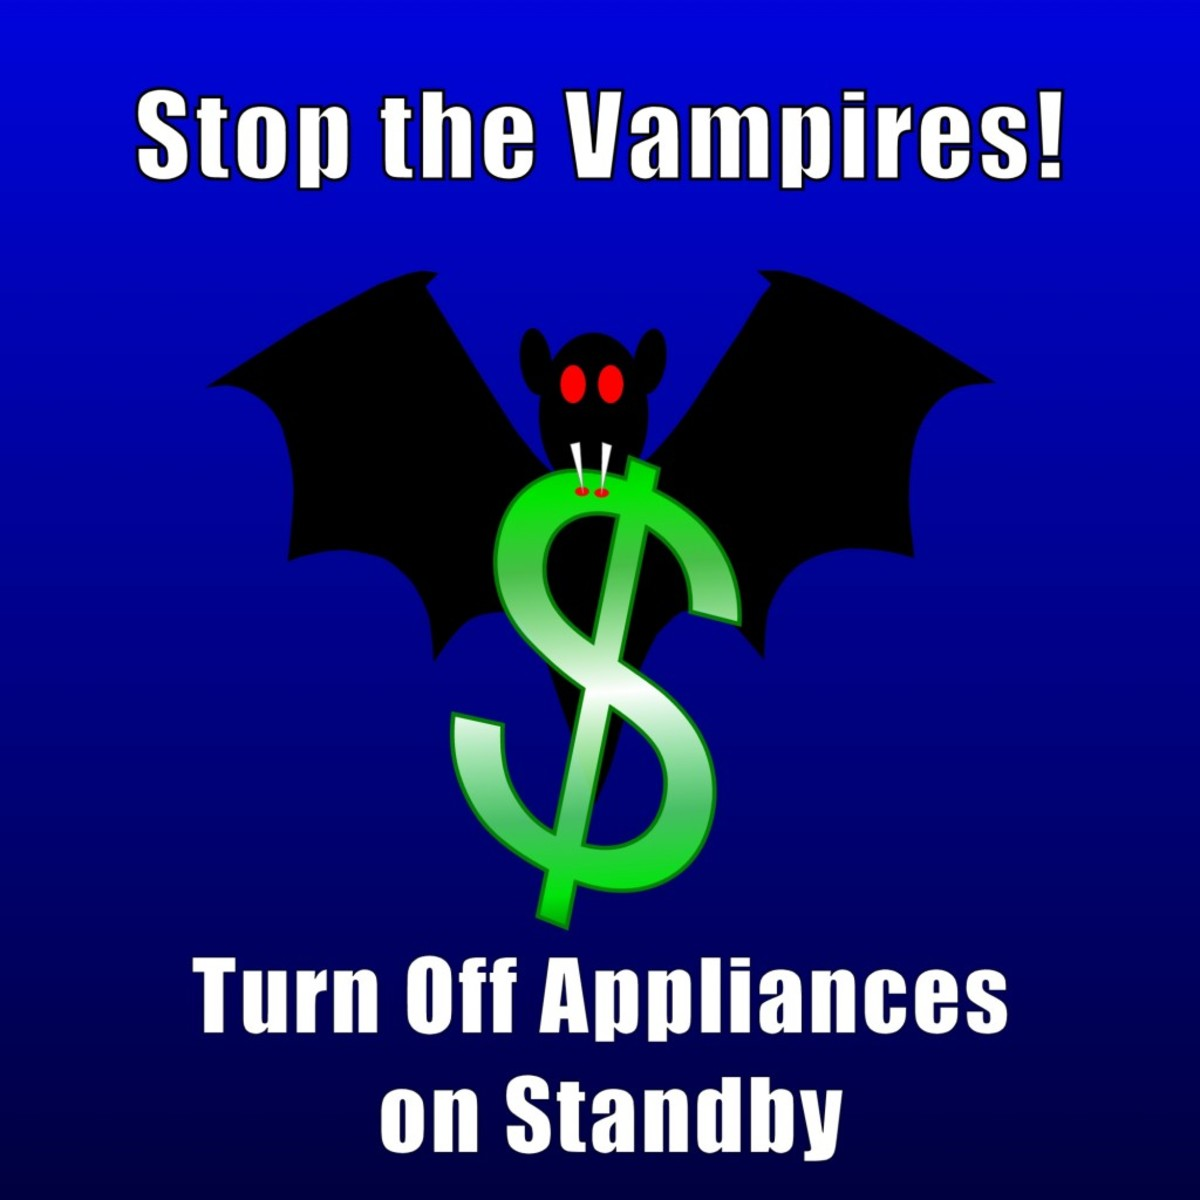 Vampire Power: Pull the Plug and Cut Down on Your Electricity Consumption